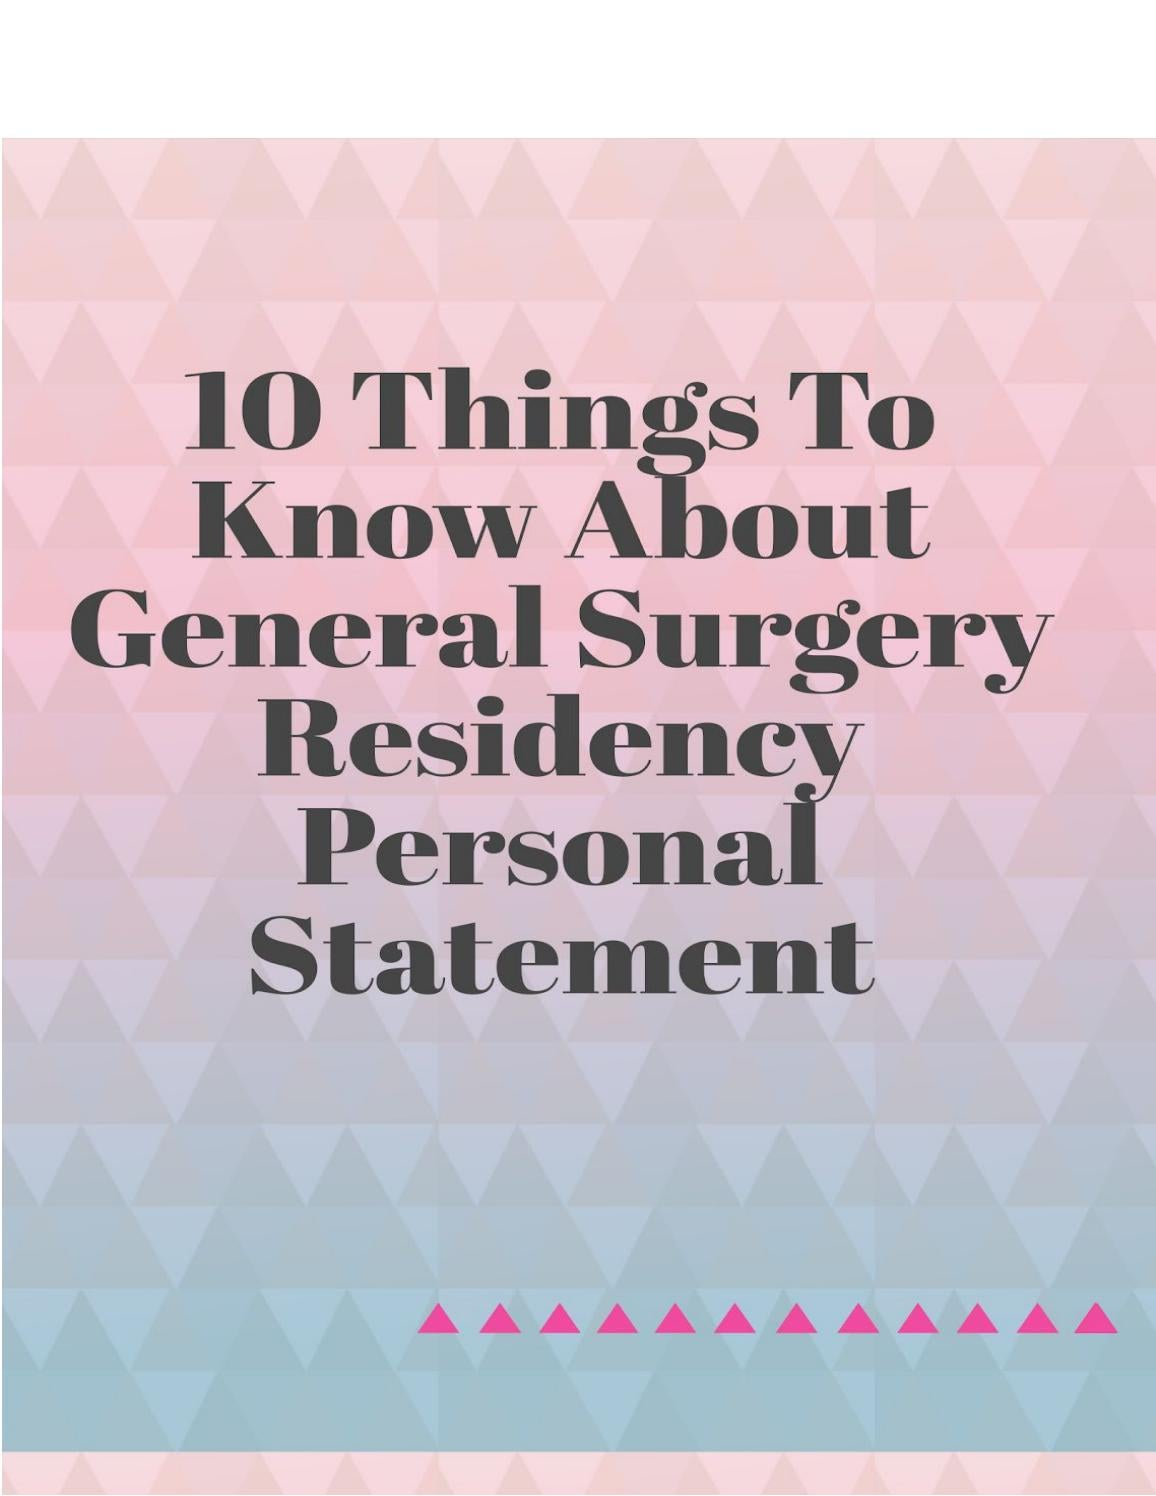 10 Things to Know About General Surgery Residency Personal